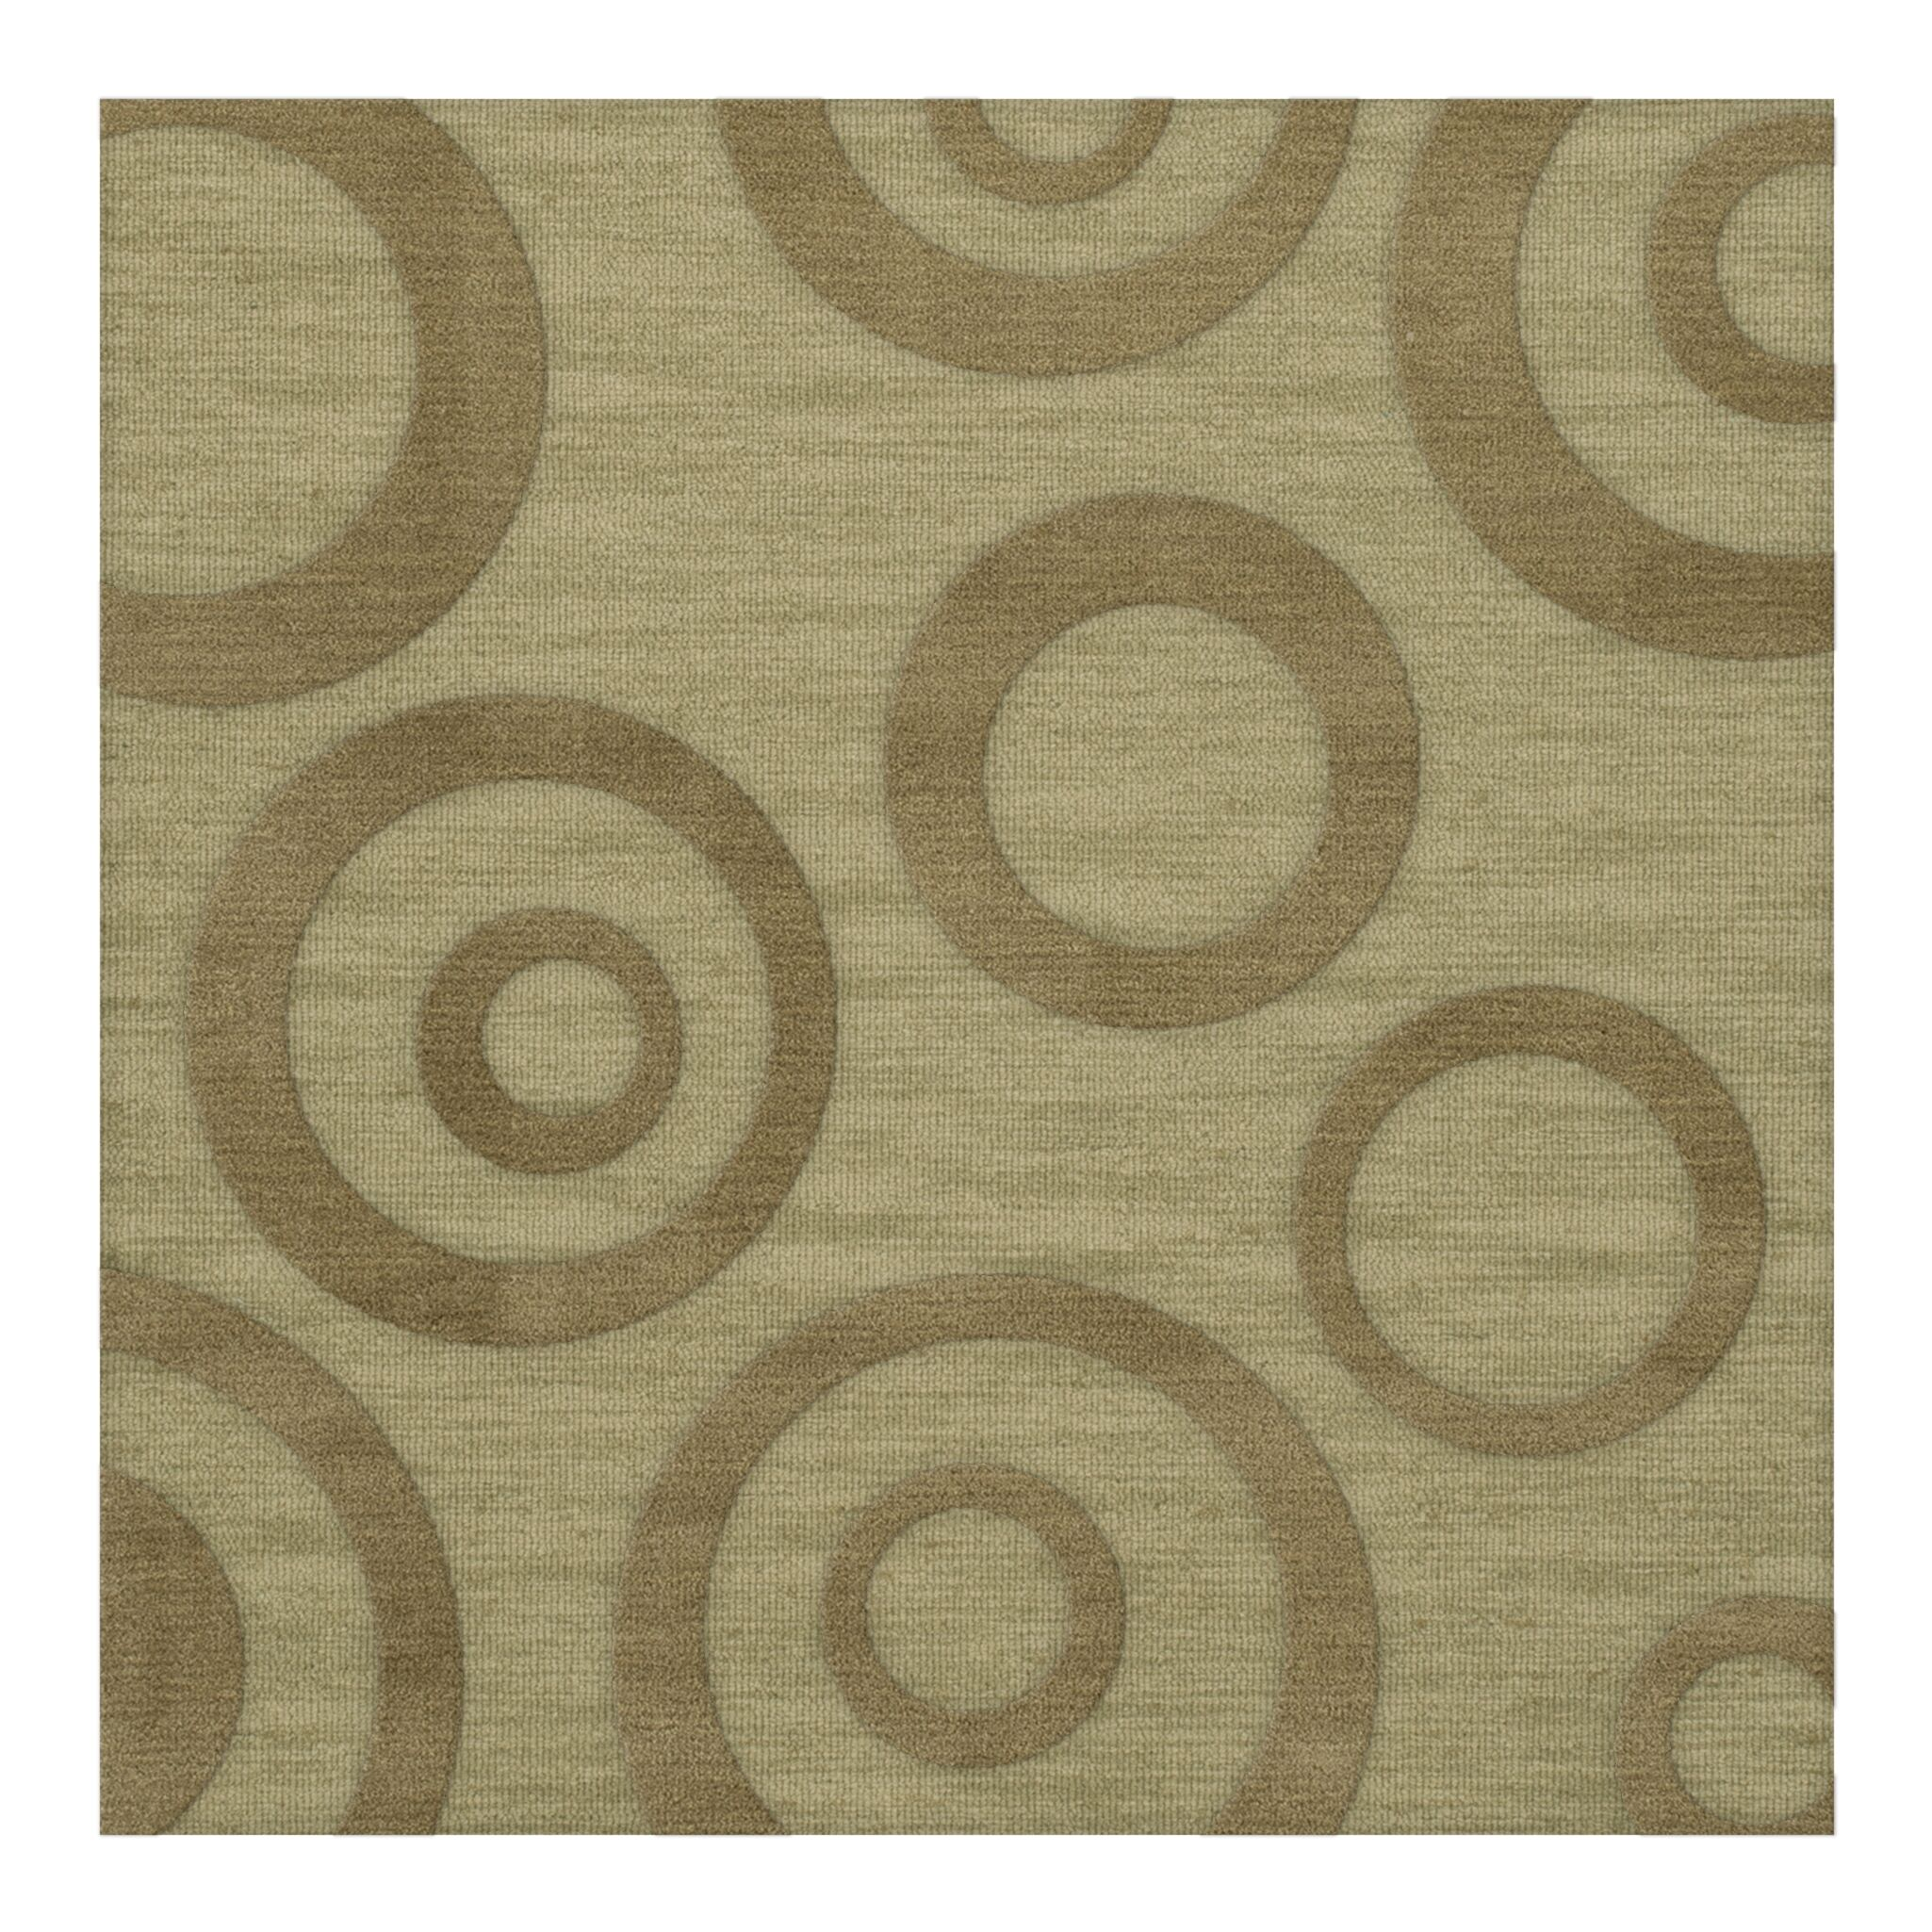 Dover Tufted Wool Marsh Area Rug Rug Size: Square 12'